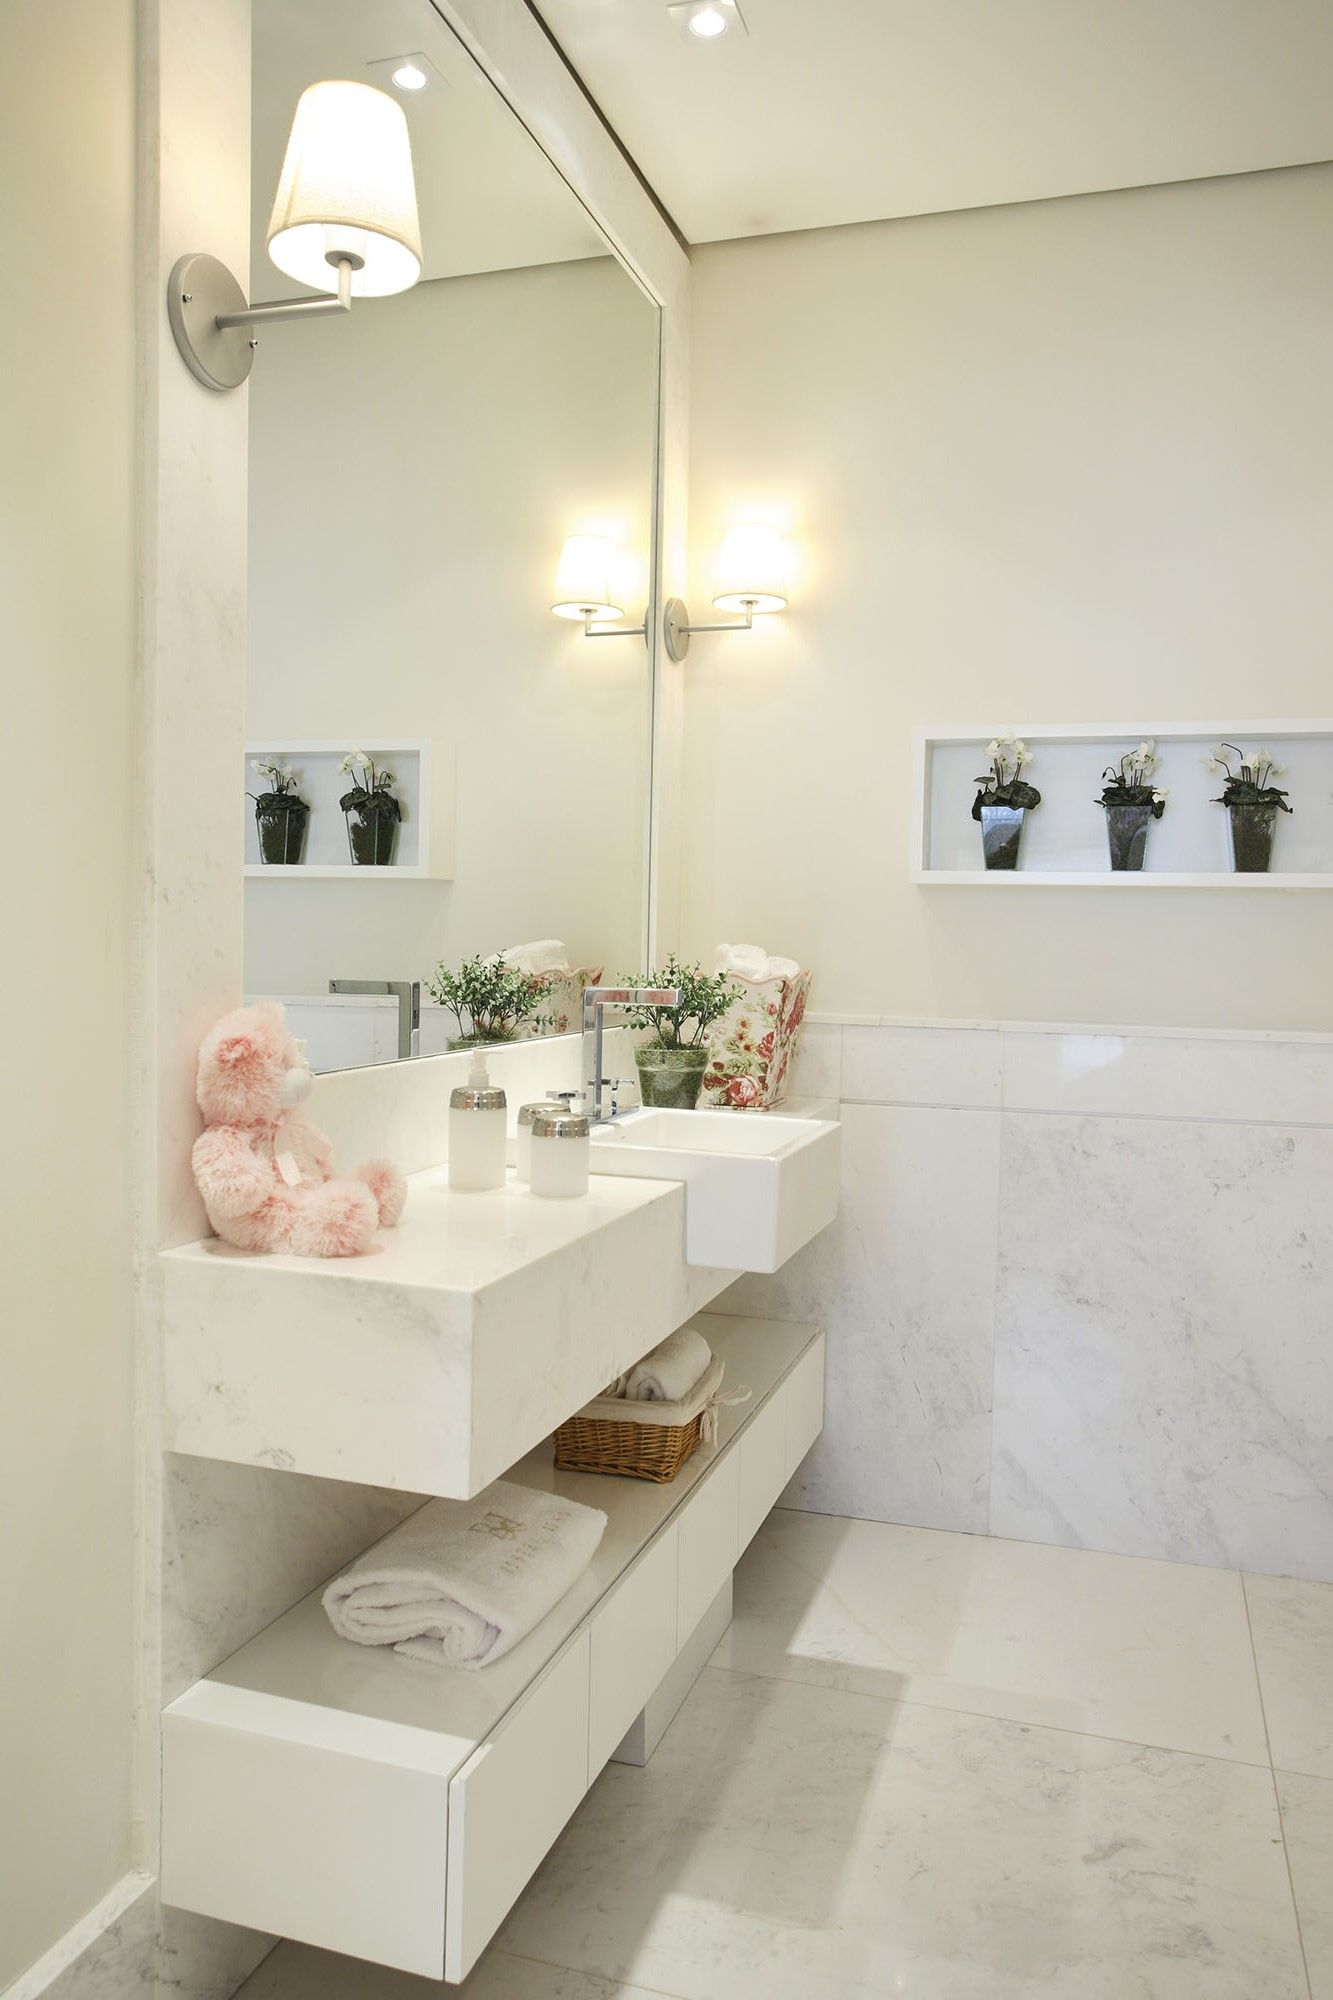 Pin by Kristina on bathroom ideas | Pinterest | Bedrooms and Interiors